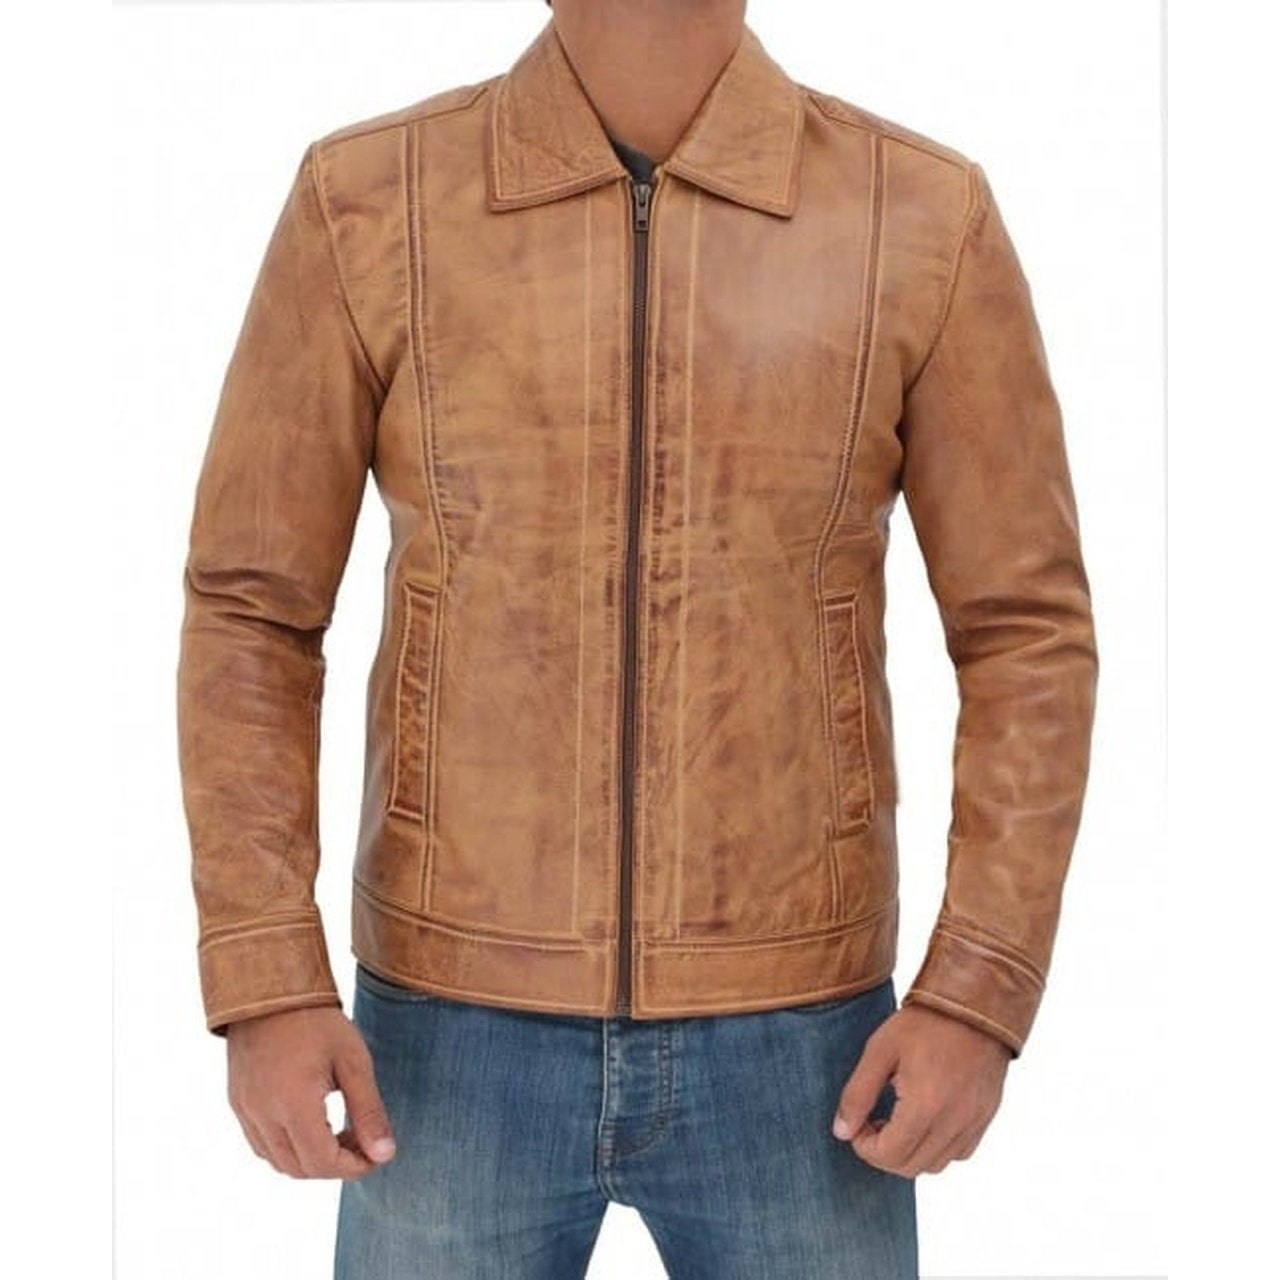 Casual Stylish Camel Brown Fitted Biker Leather Mens Jacket - Leather Jacket